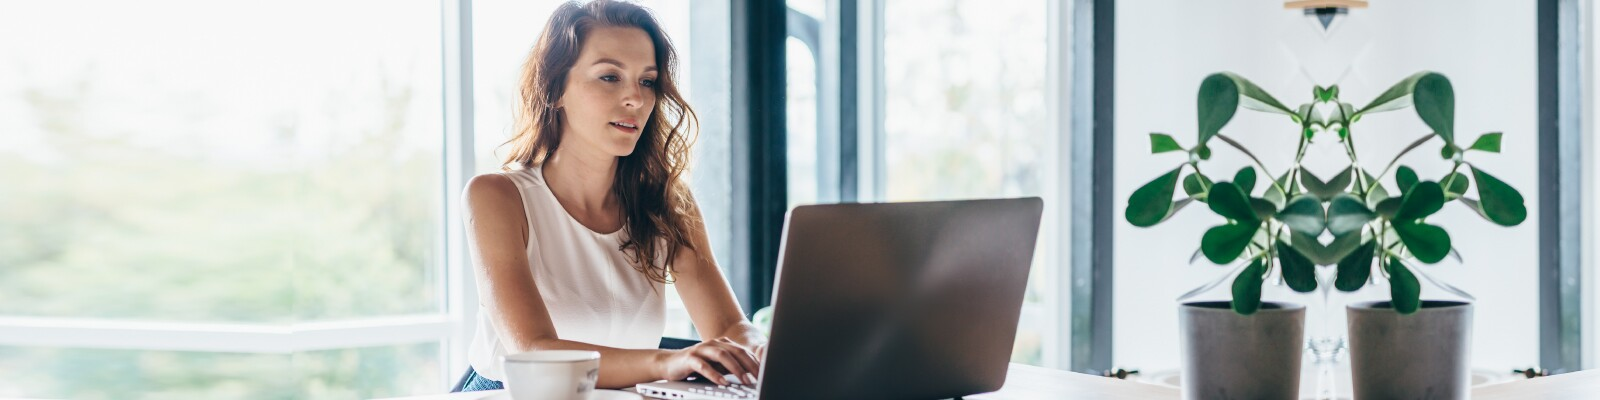 Woman with wavy hair sits in her home working on laptop